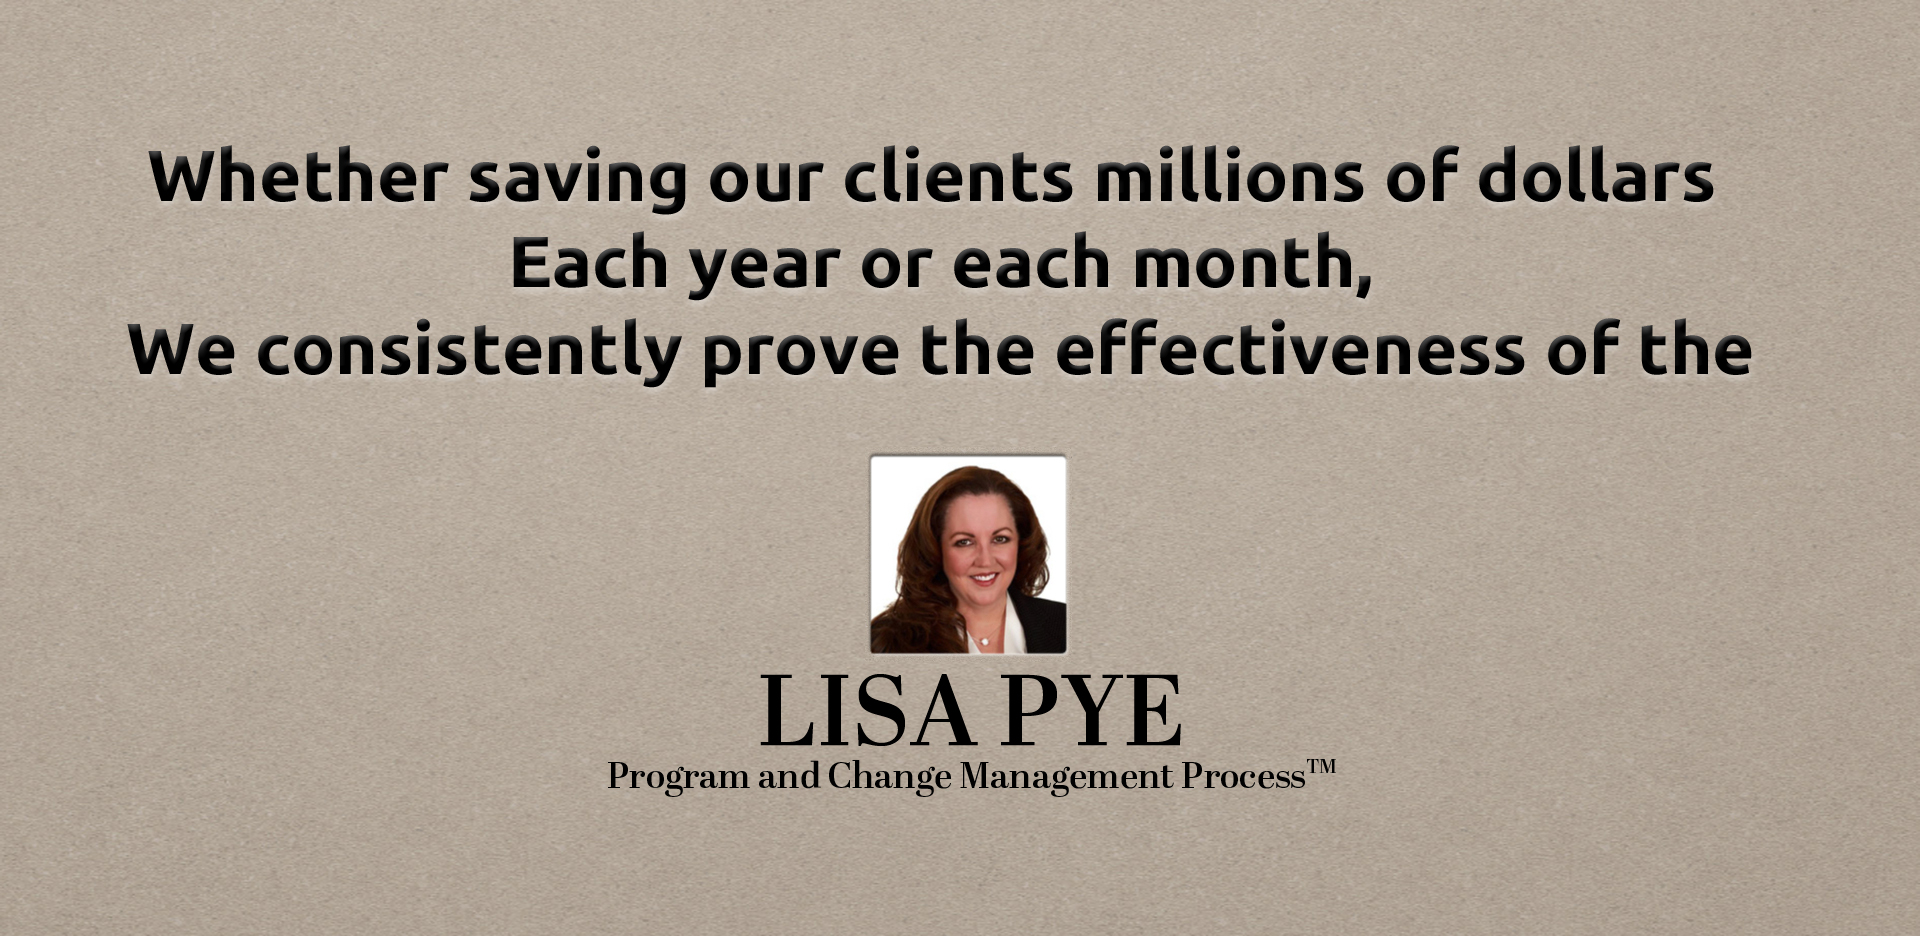 The Lisa Pye Program and Project Management Process saves clients millions of dollars